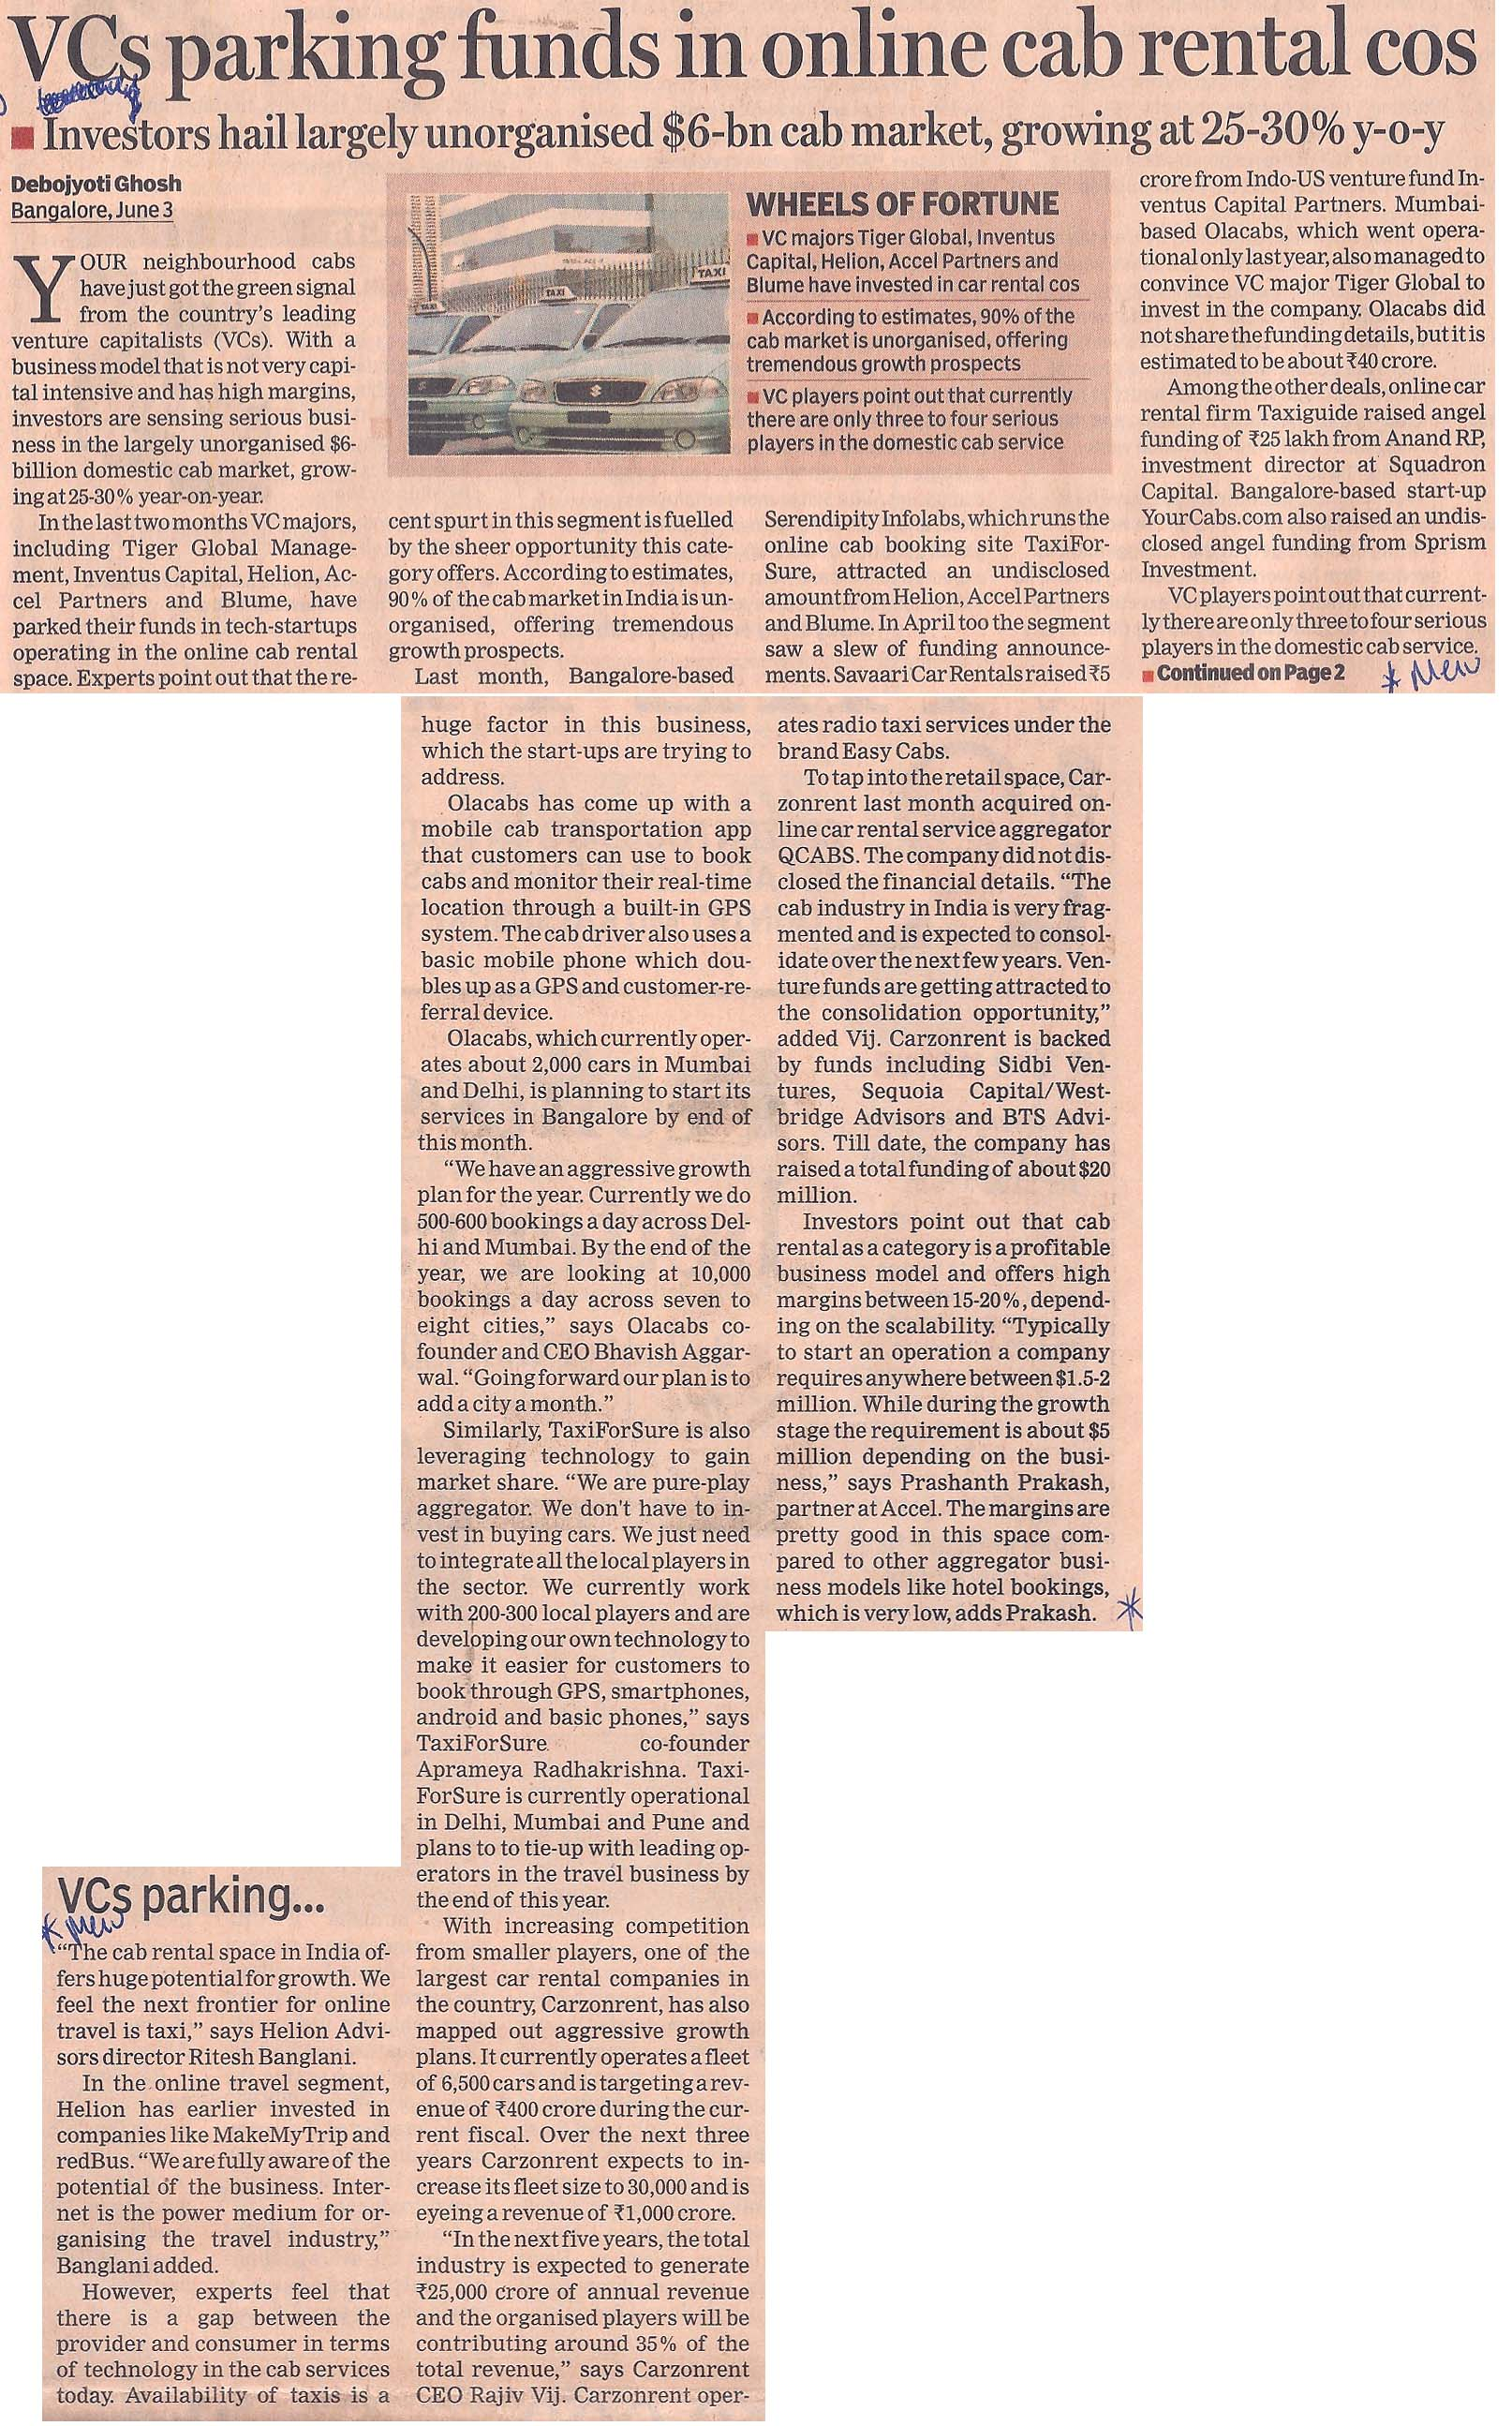 The Financial Express 04 06 12 Pg 01  02.jpg